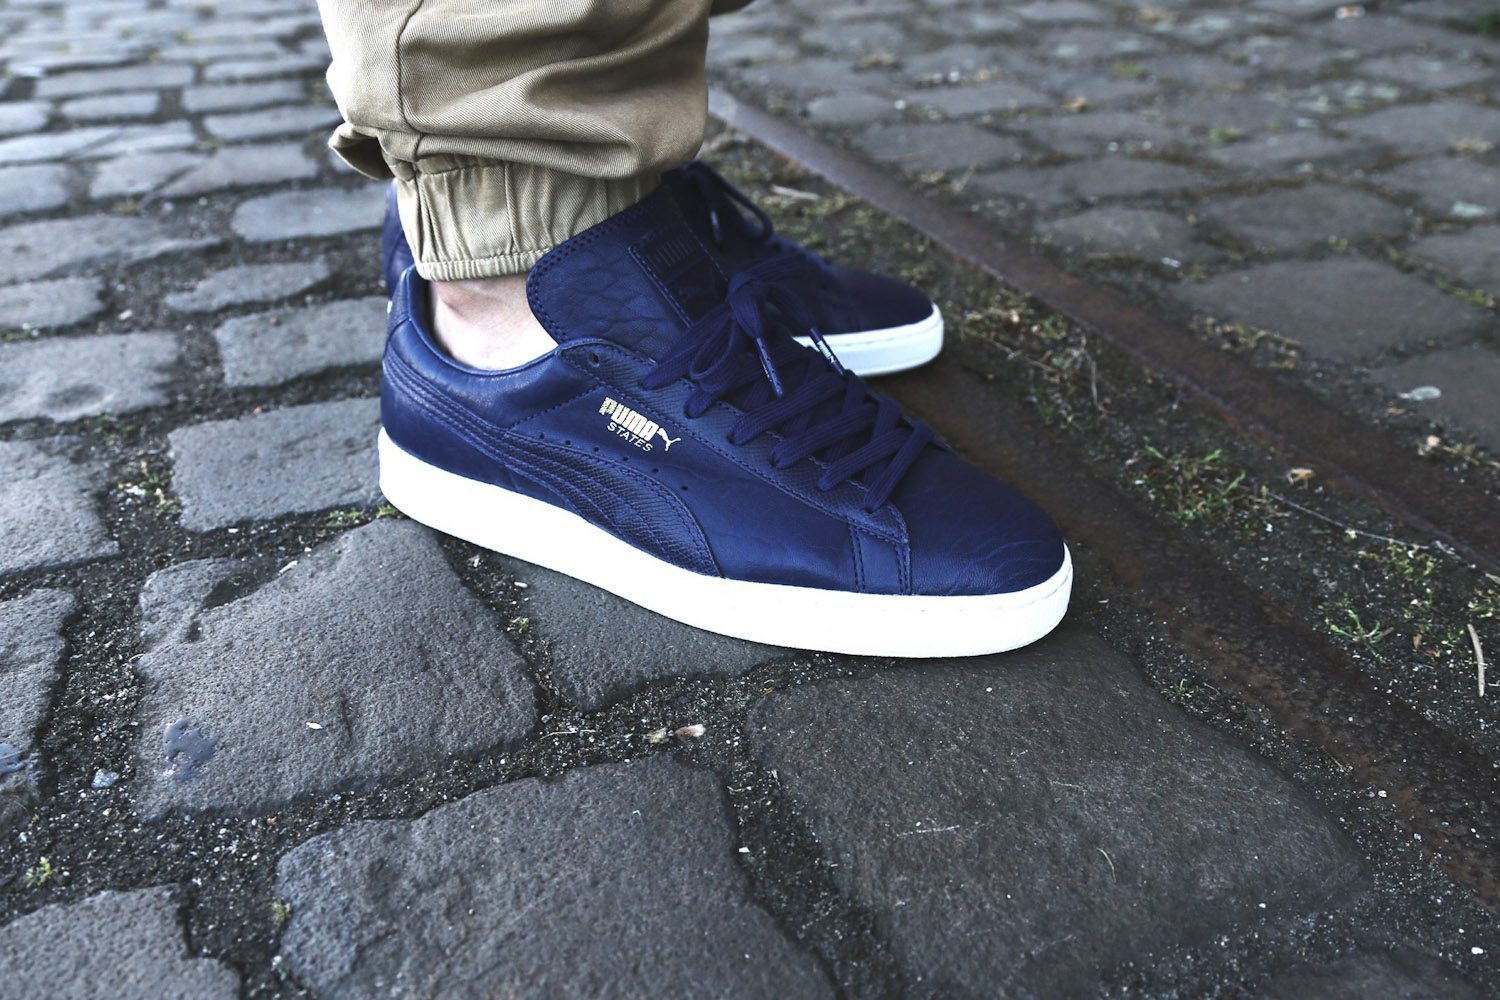 PUMA States Premium Leather Pack 7